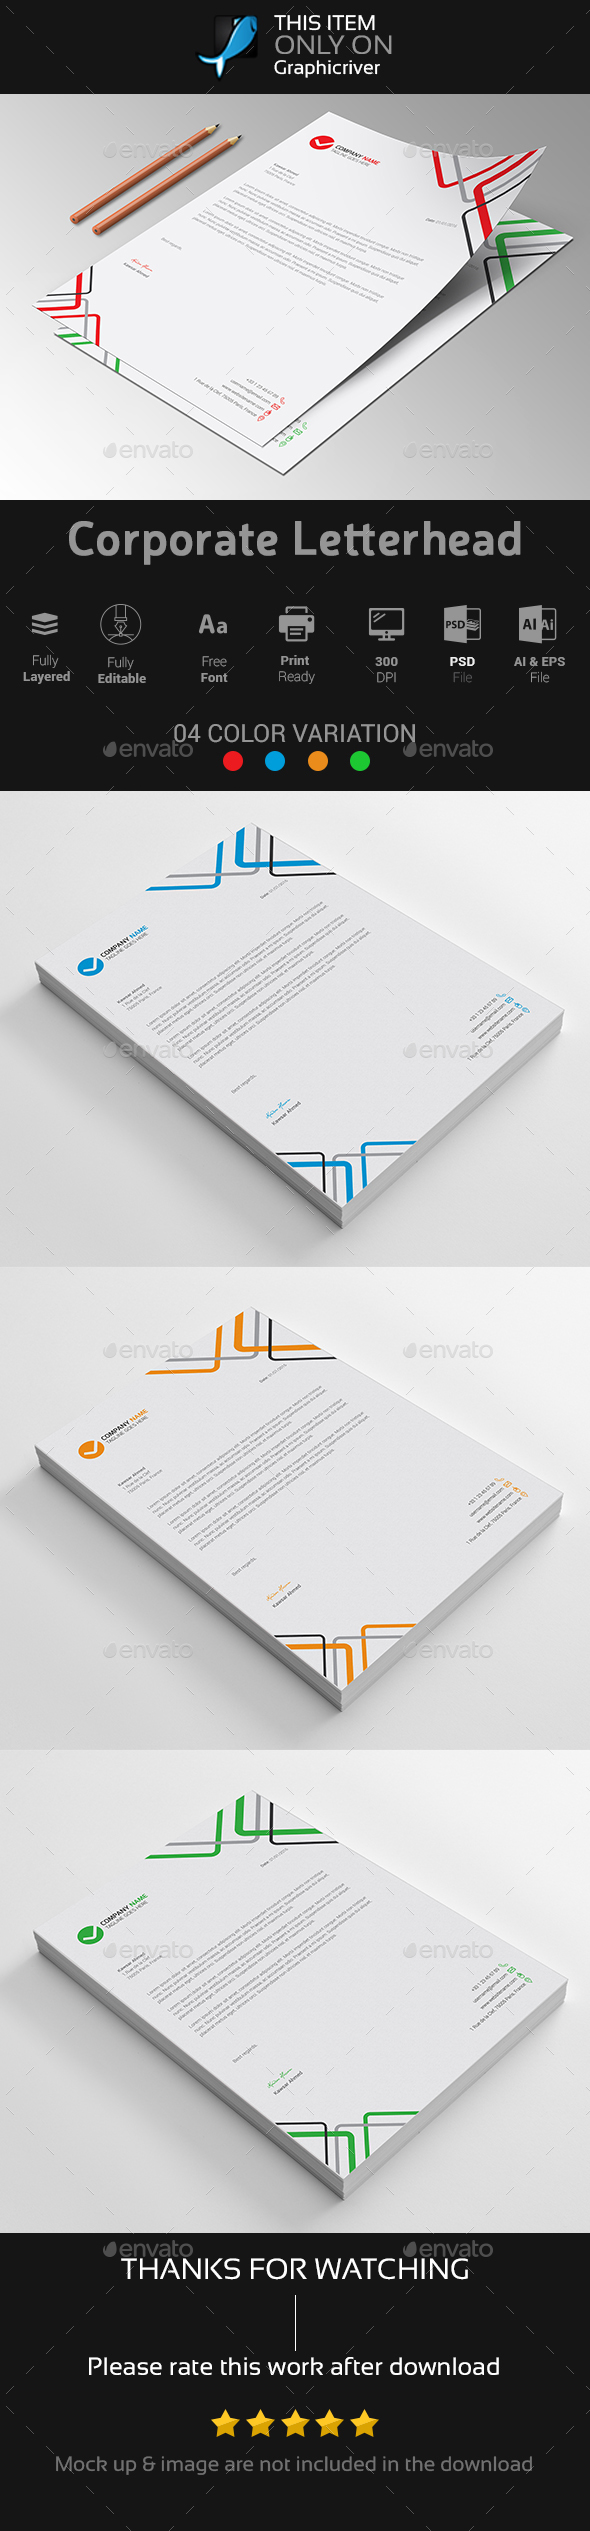 Corporate Letterhead Vol-05 - Stationery Print Templates